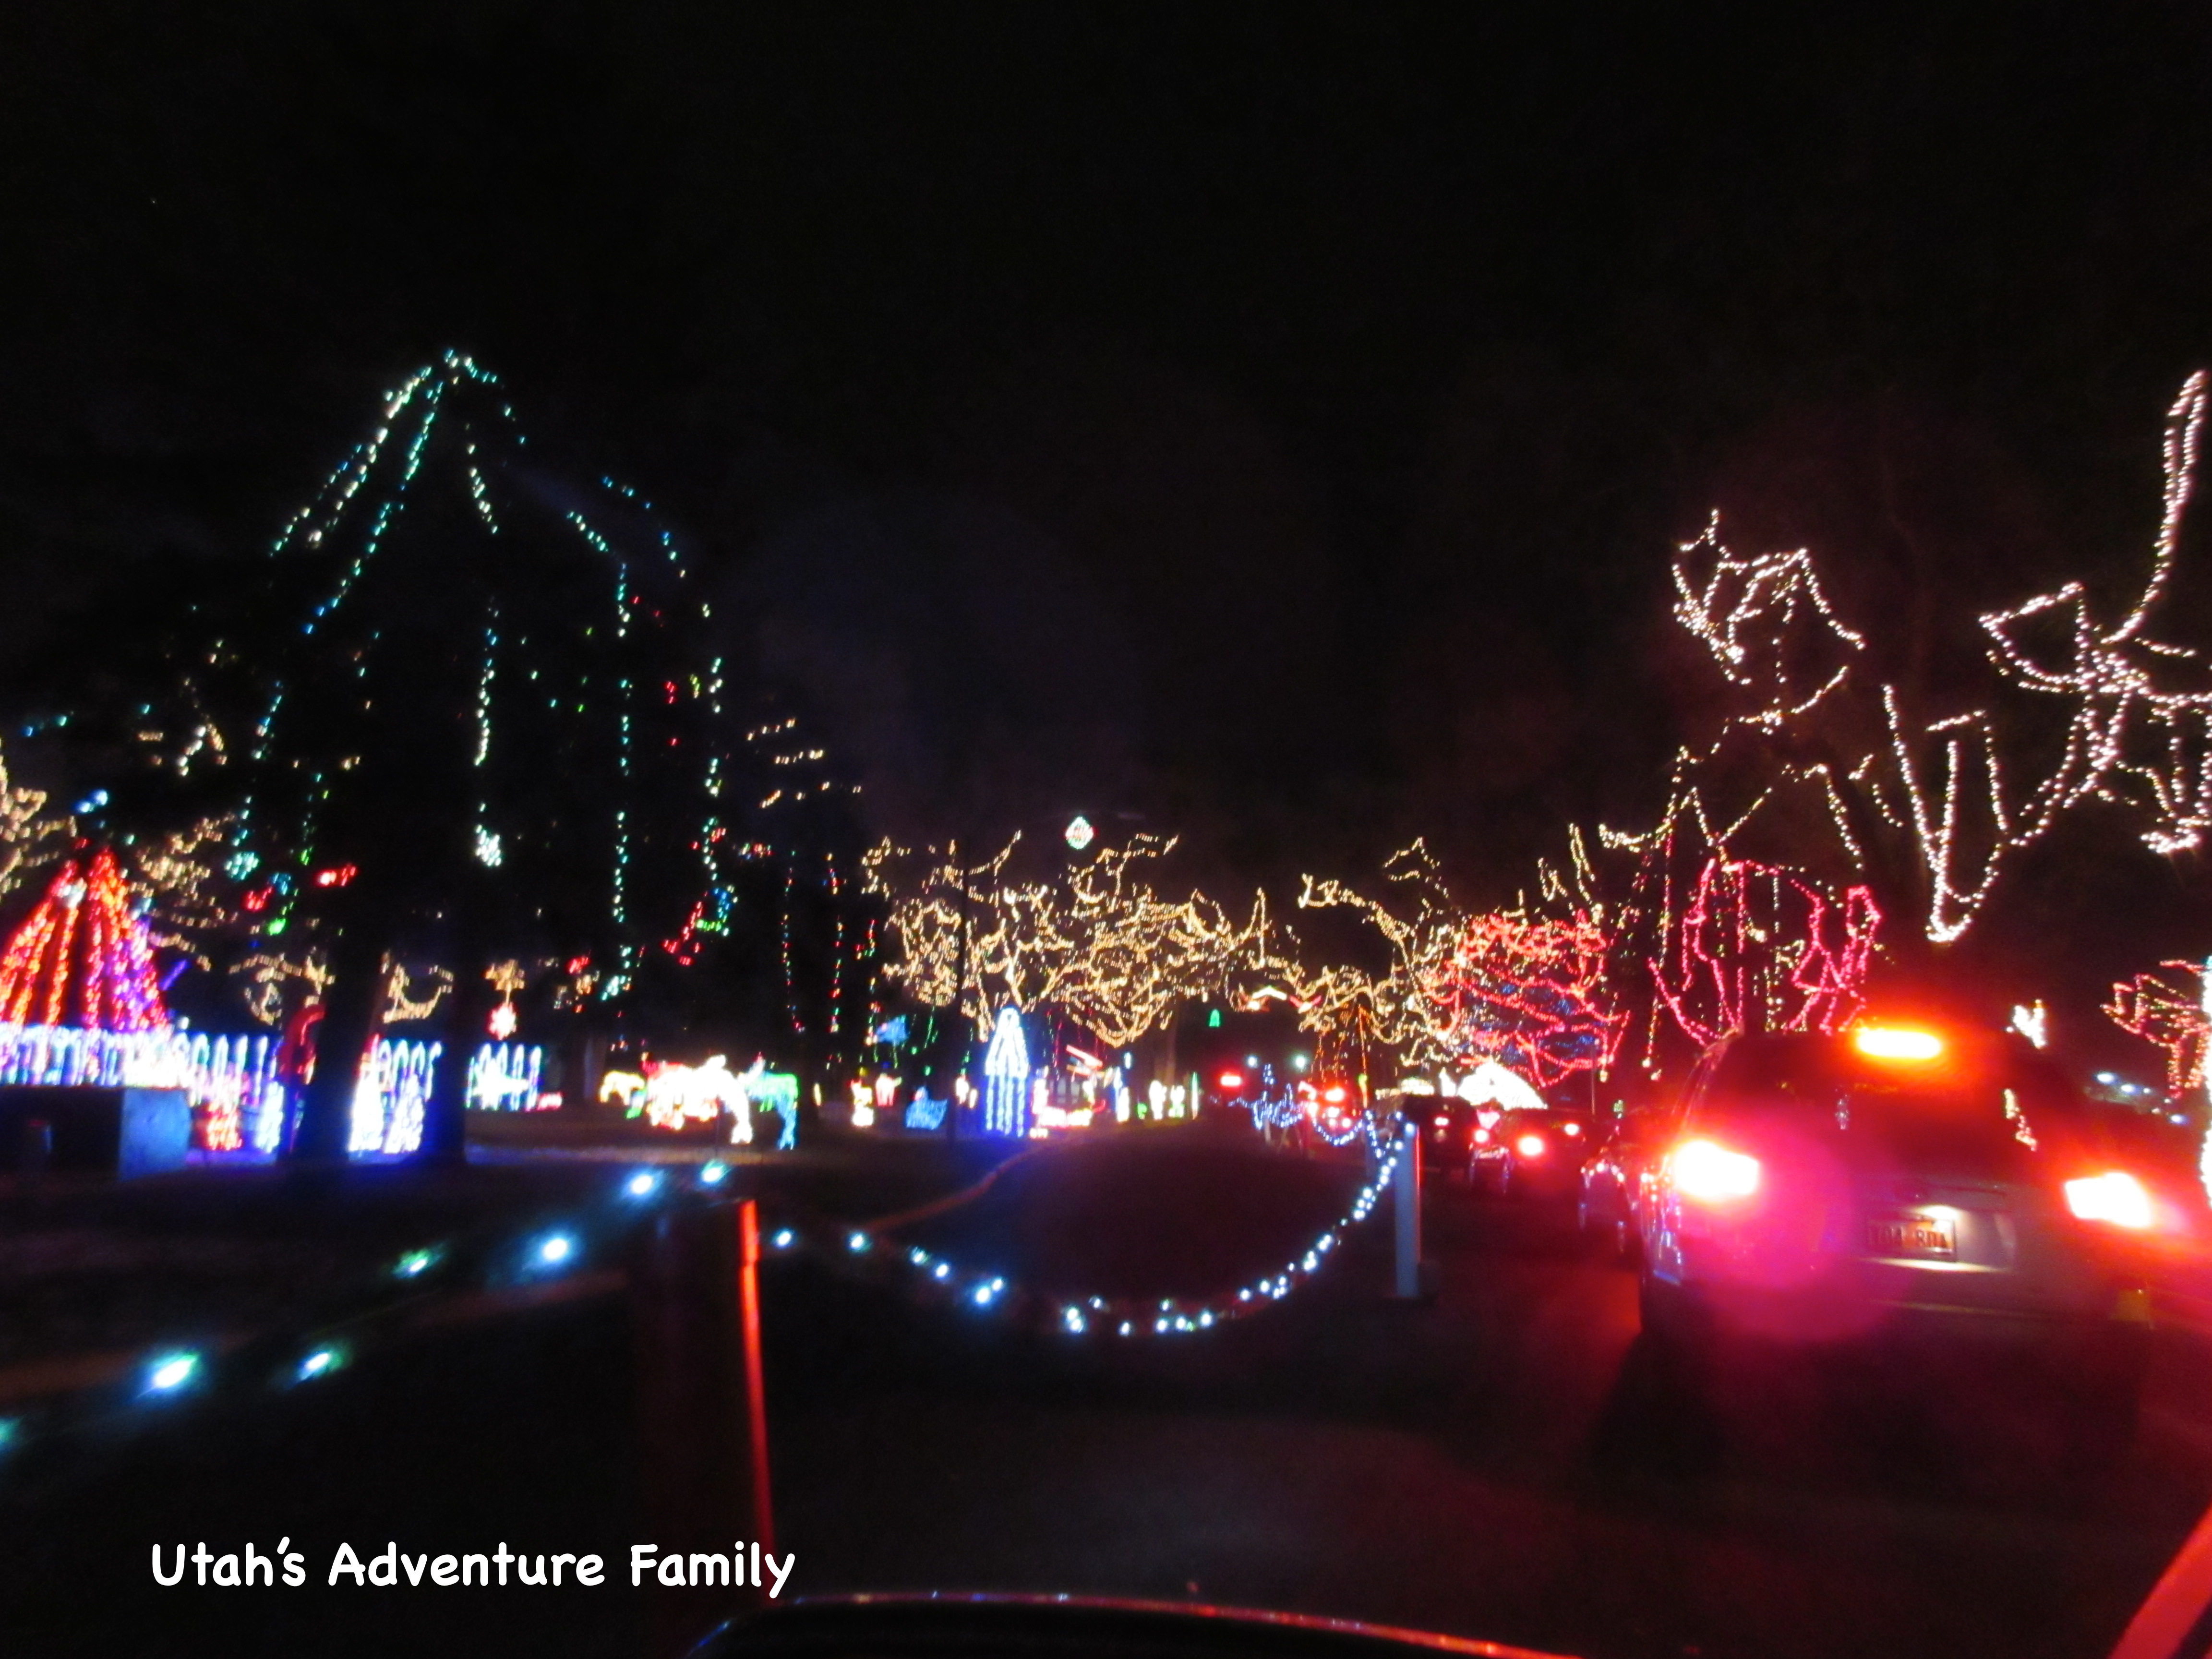 you ride right through the lights on the wagon - Willard Bay Christmas Lights